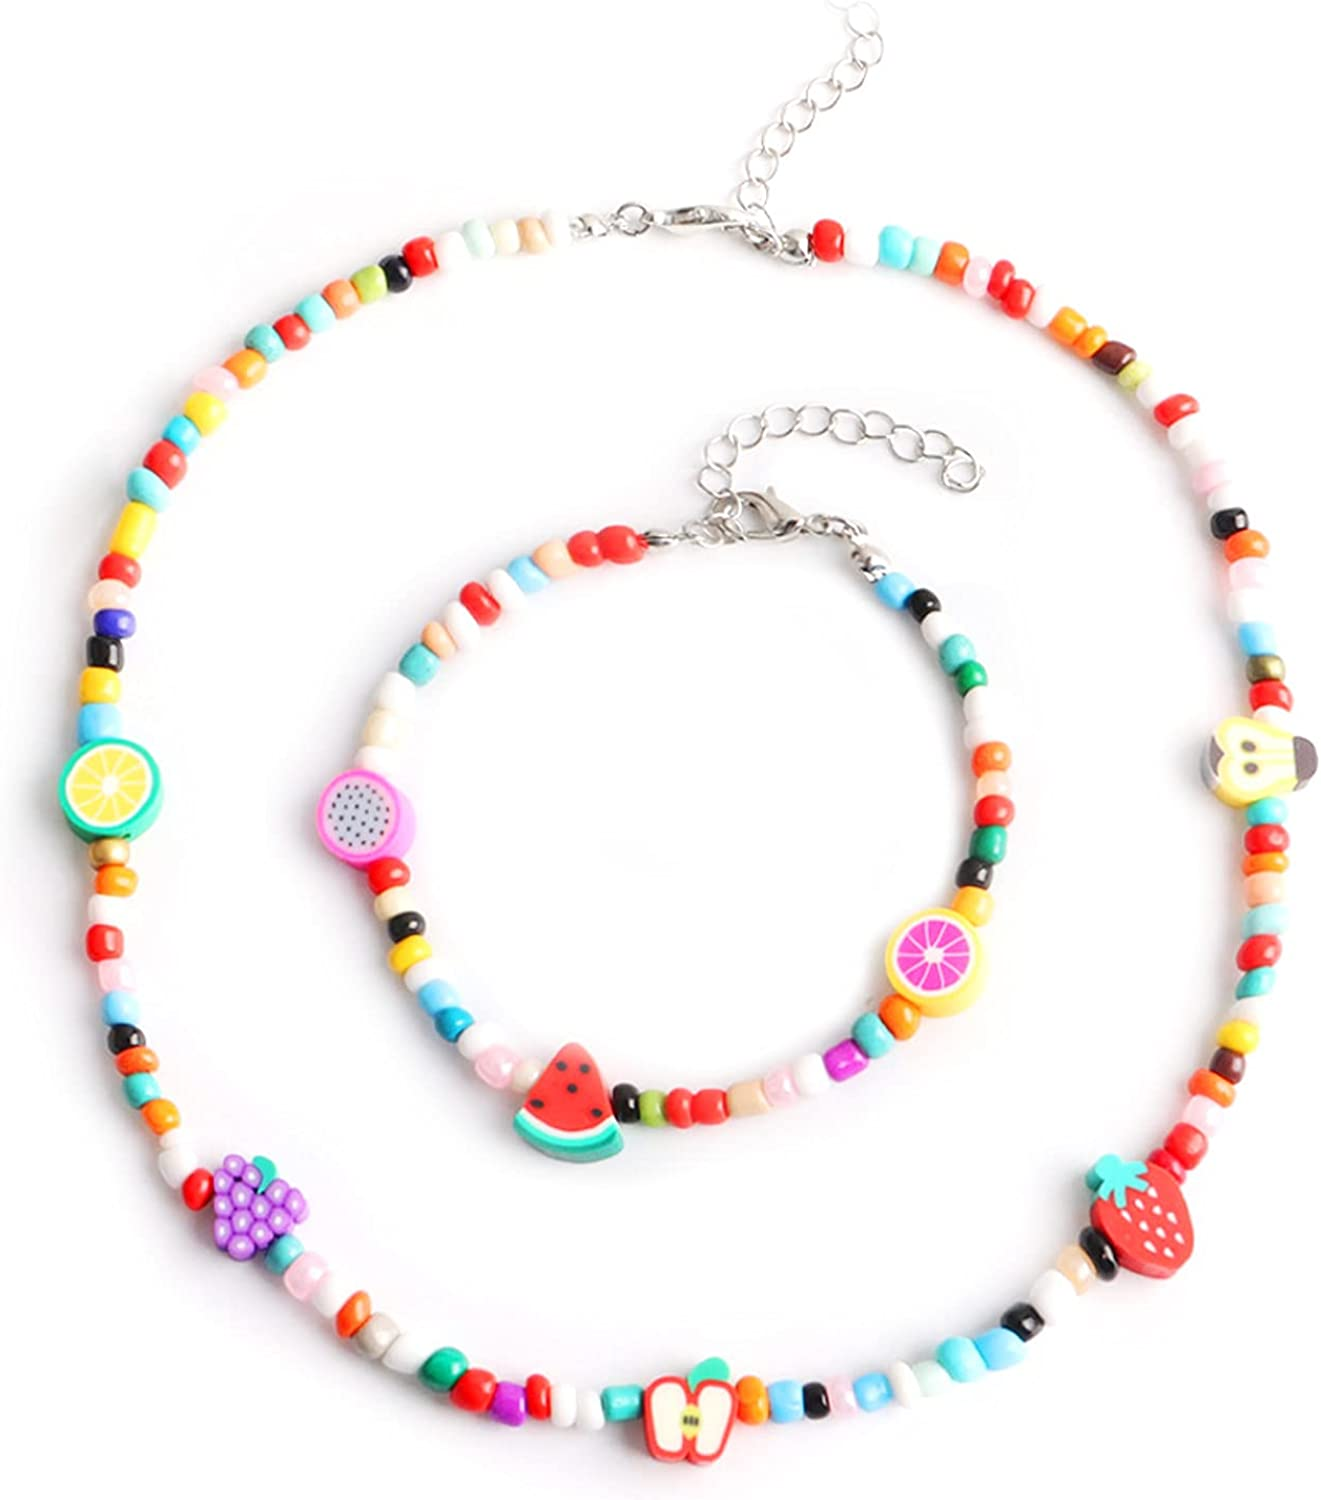 Lovely Colorful Beaded Strand Necklace Bracelet Set, Boho Beads Sunflower Smiley Fruit Charms Braided Collar Necklace Anklet, Women Girls Summer Beachy Vacation Barefoot Bikini Jewelry